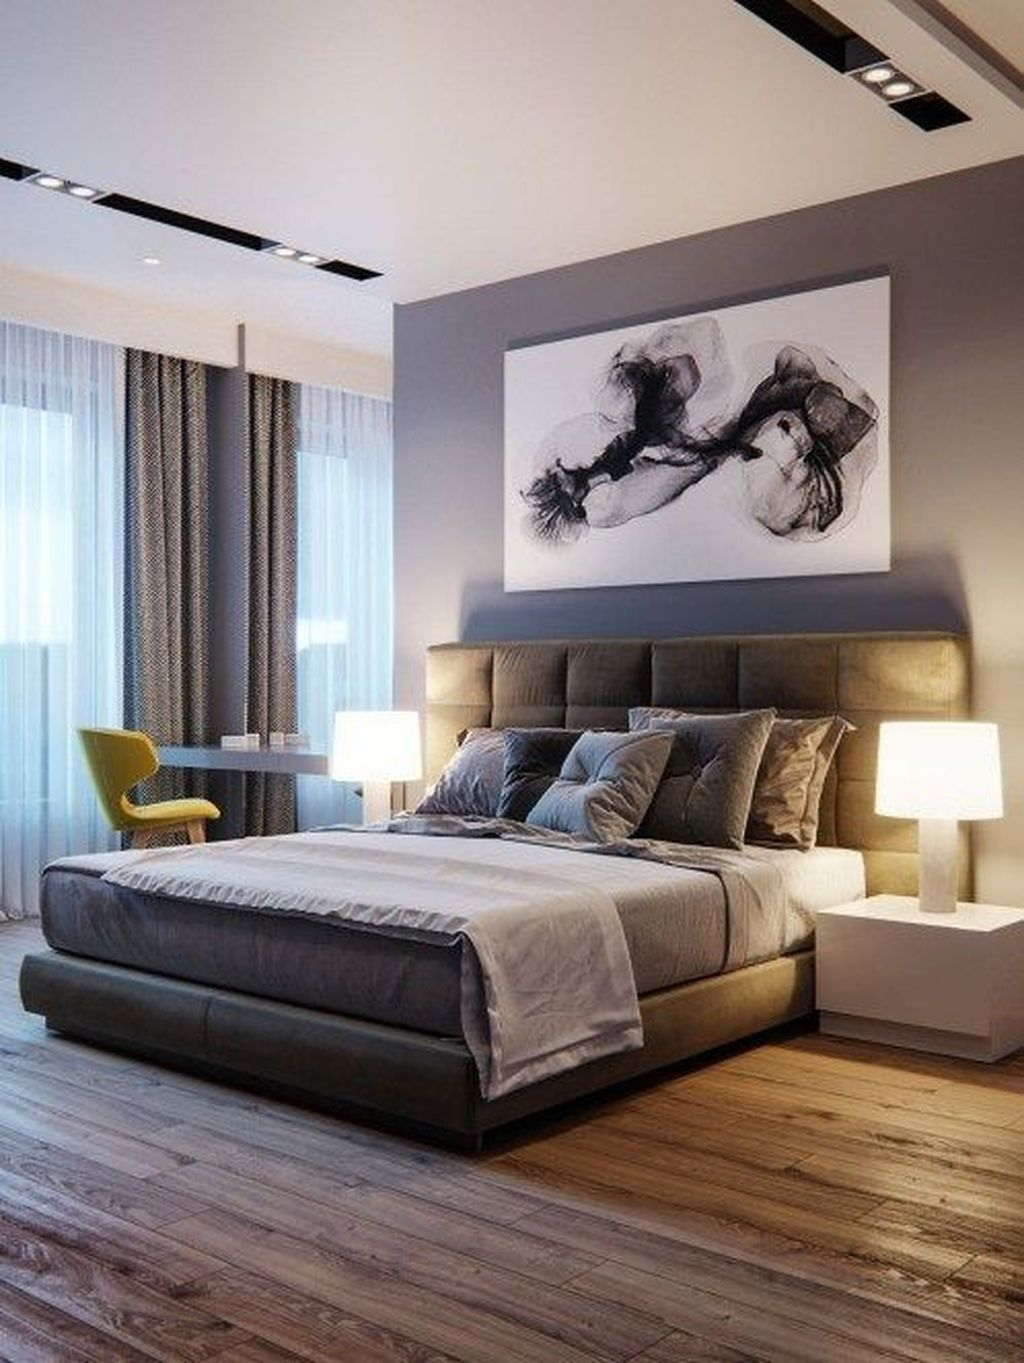 Fabulous Modern Minimalist Bedroom You Have To See 22